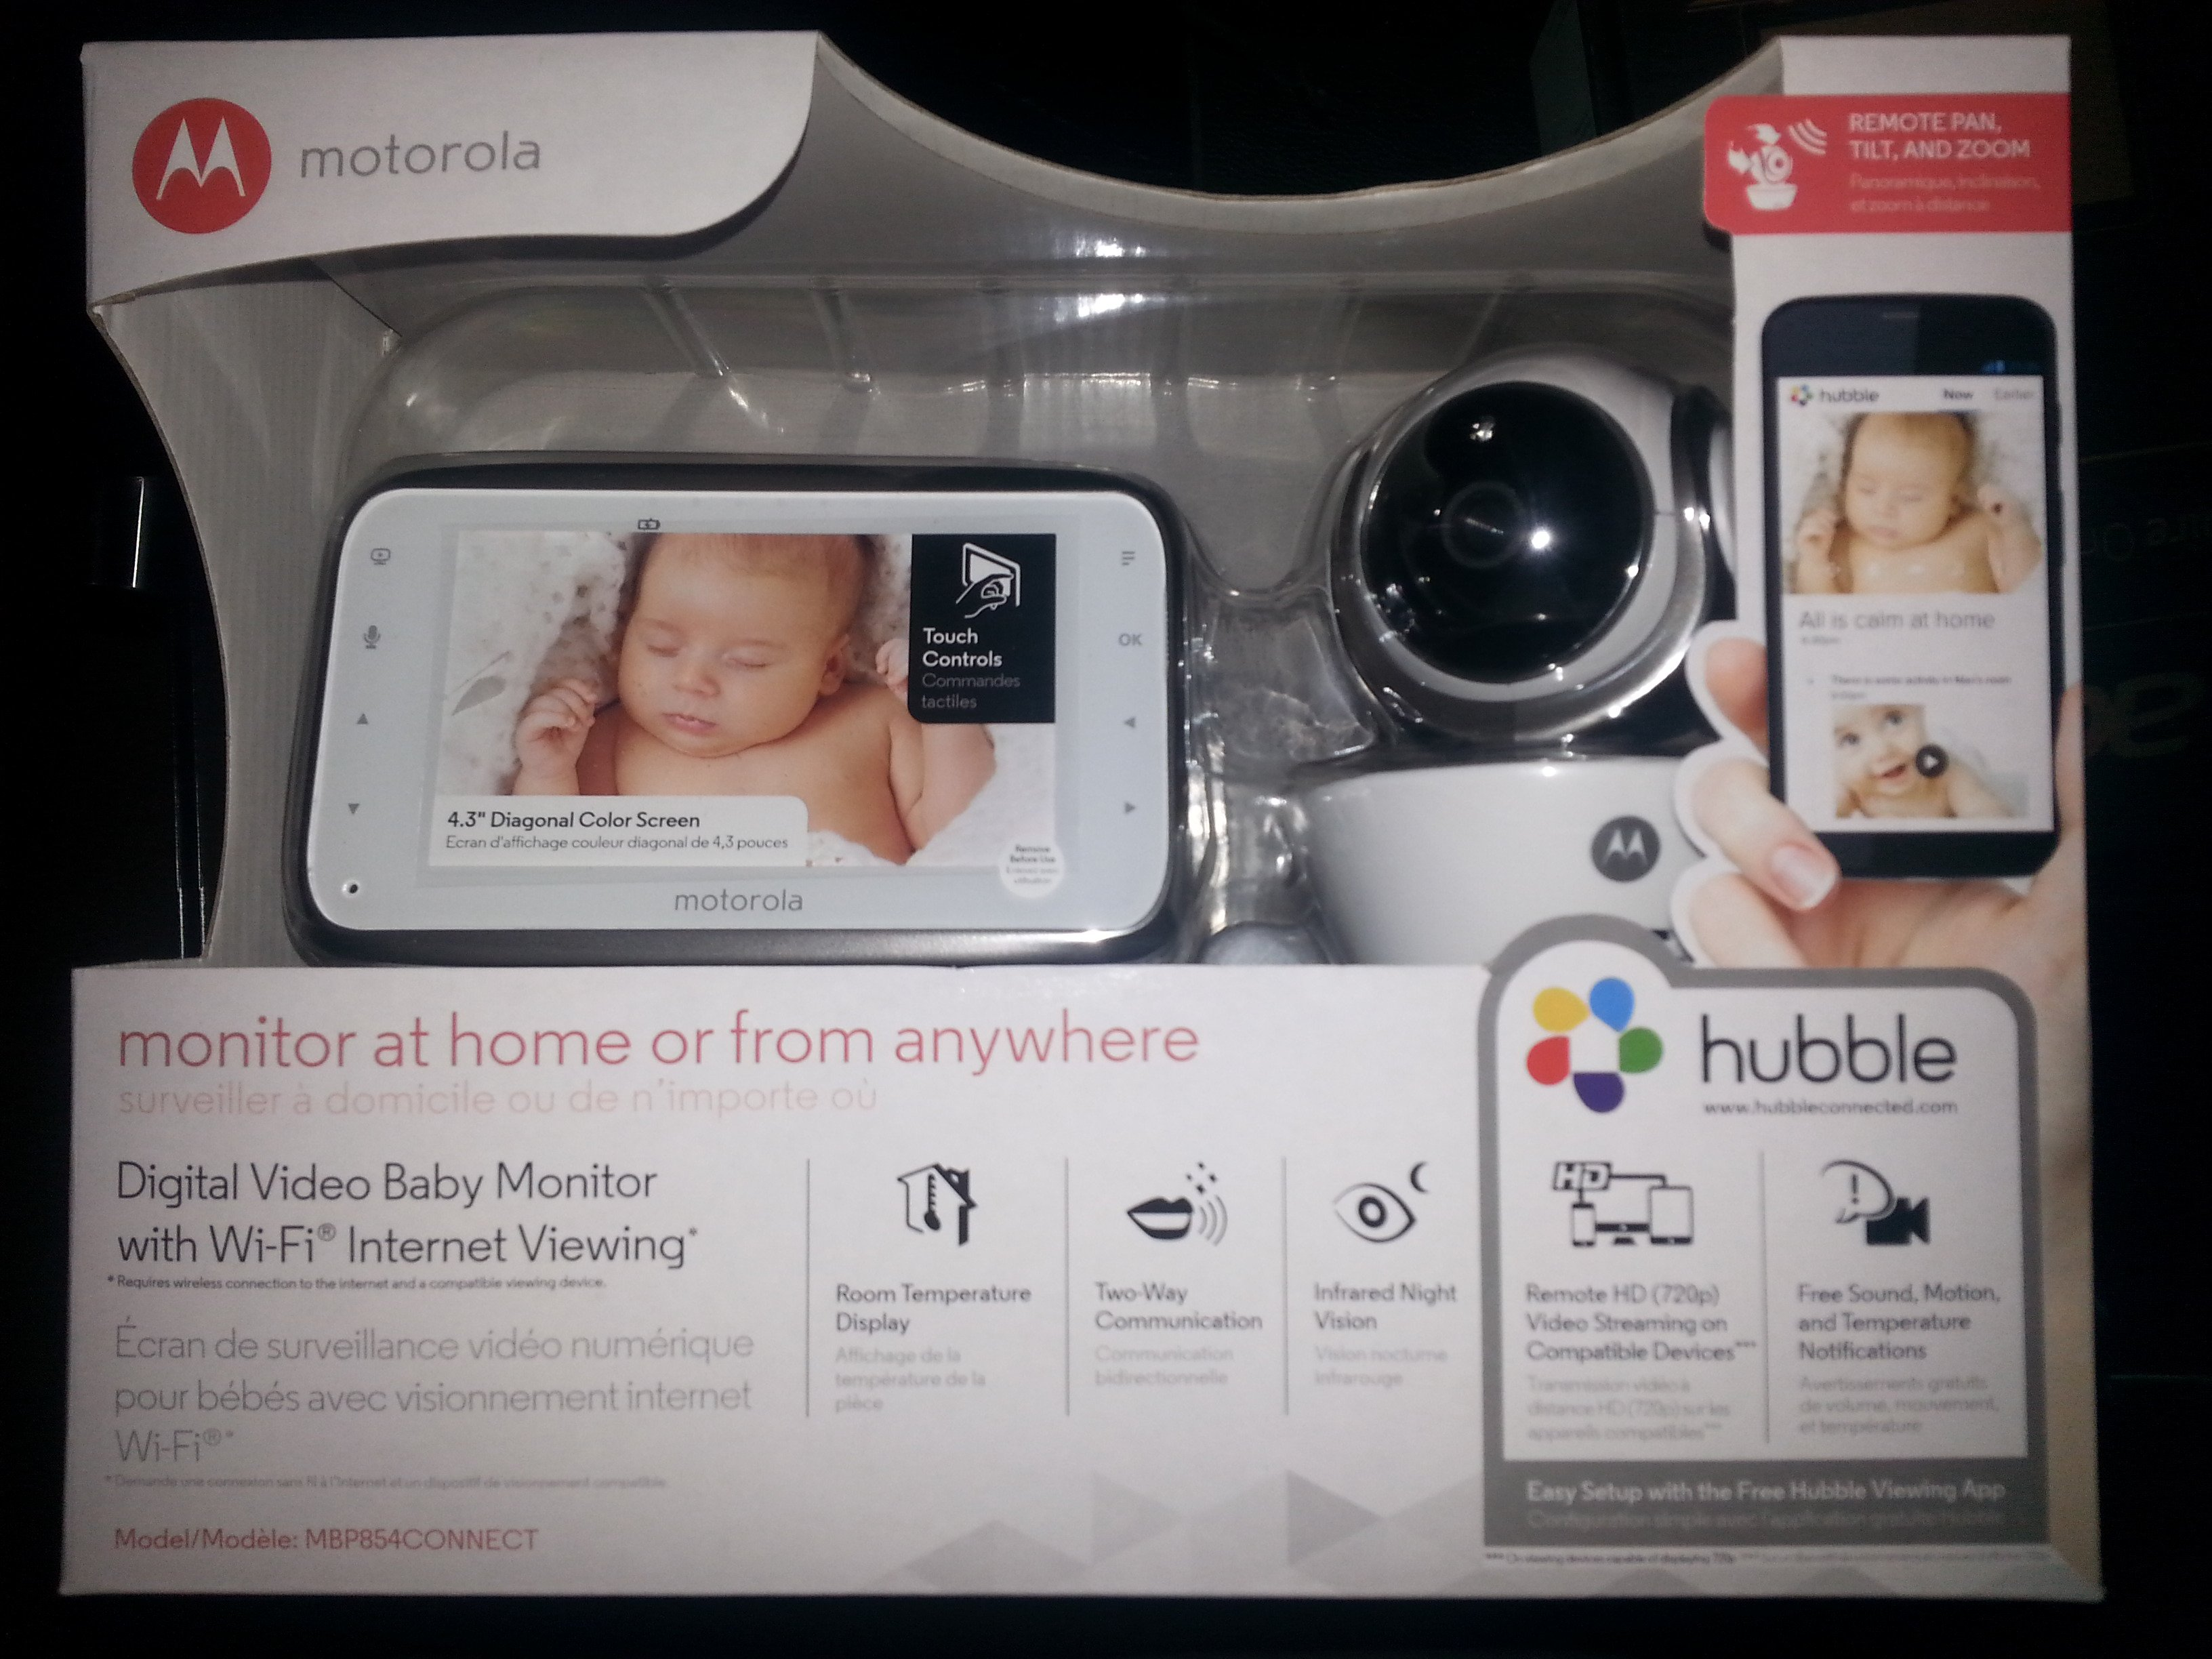 2015 Holiday Guide. Motorola Digital Video Baby Monitor, every home needs one!